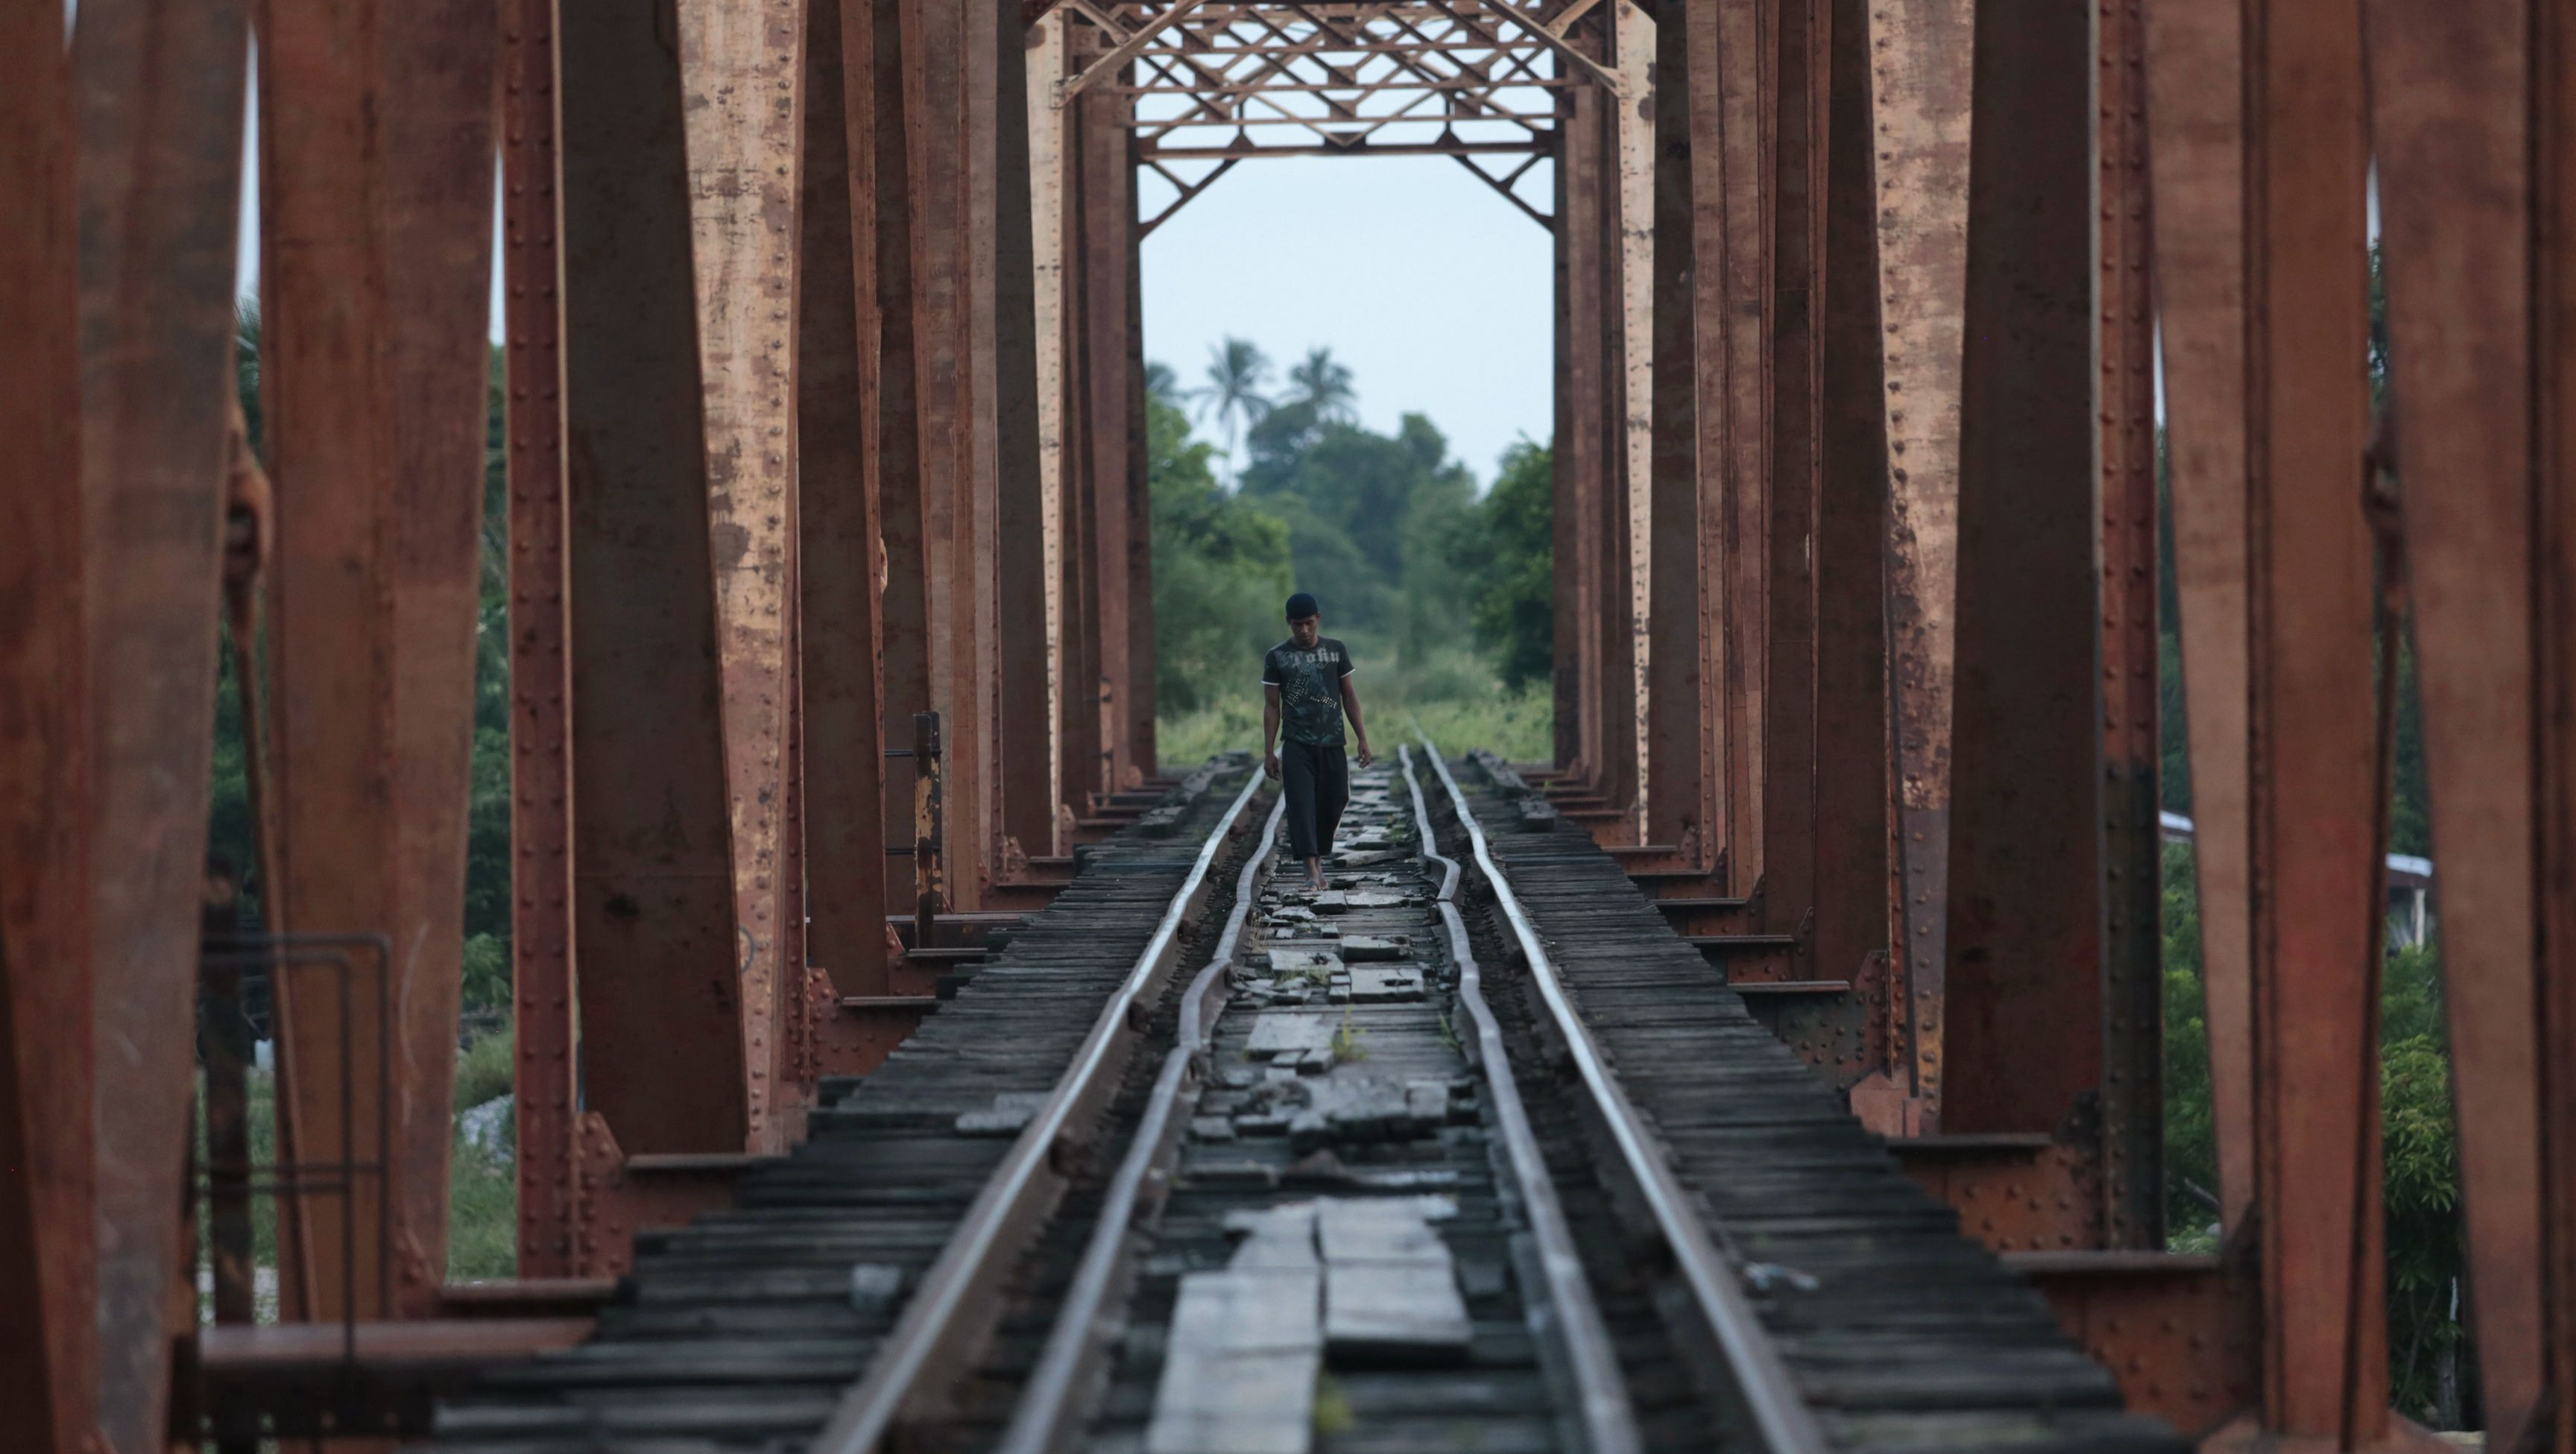 Central American migrant walks on the train tracks in Arriaga